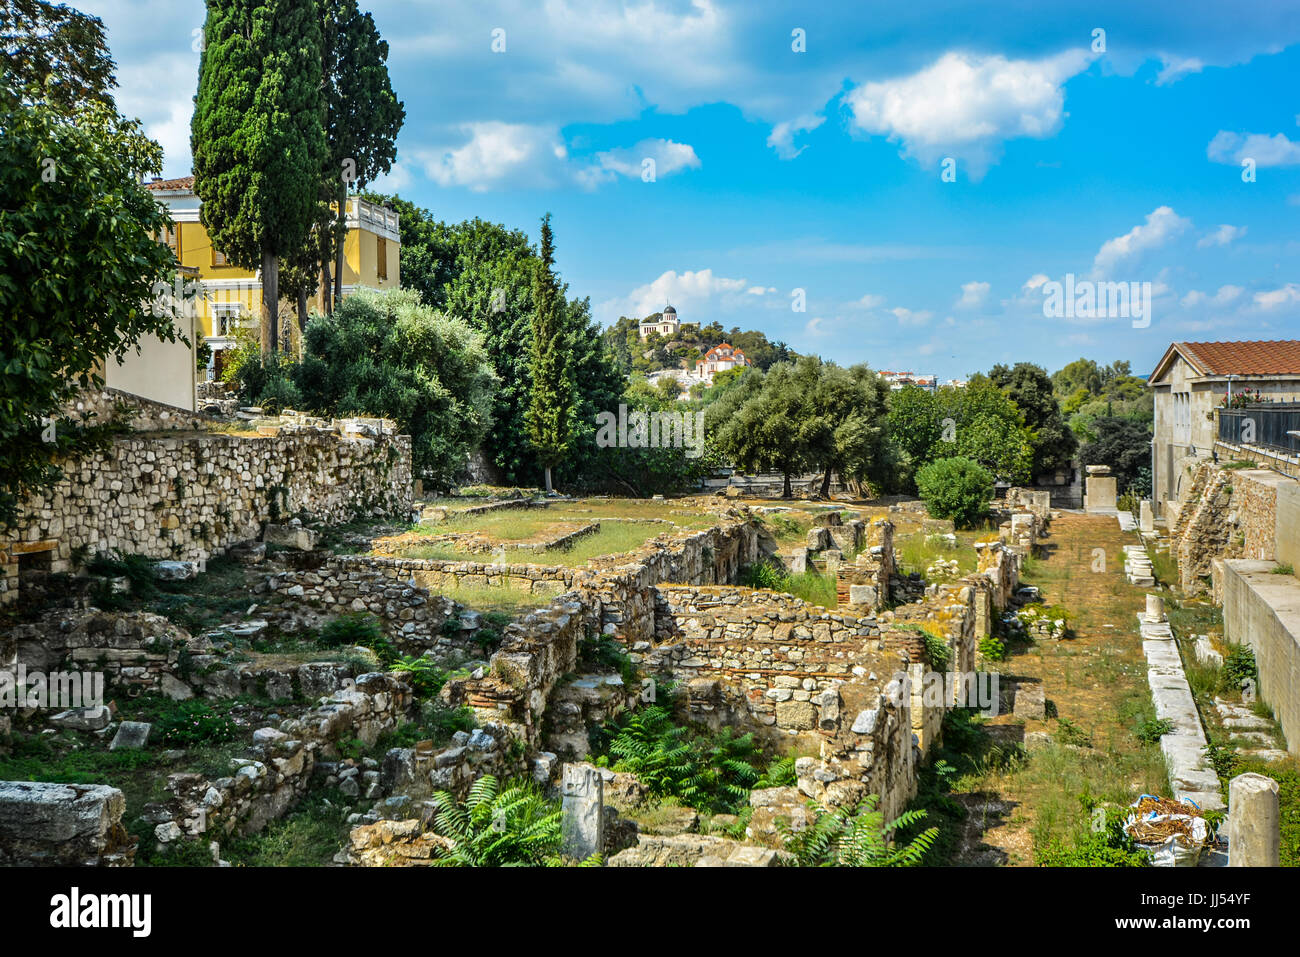 Ancient Greek ruins in Athens with a church and temple atop a hill in the distance on a warm summer day - Stock Image